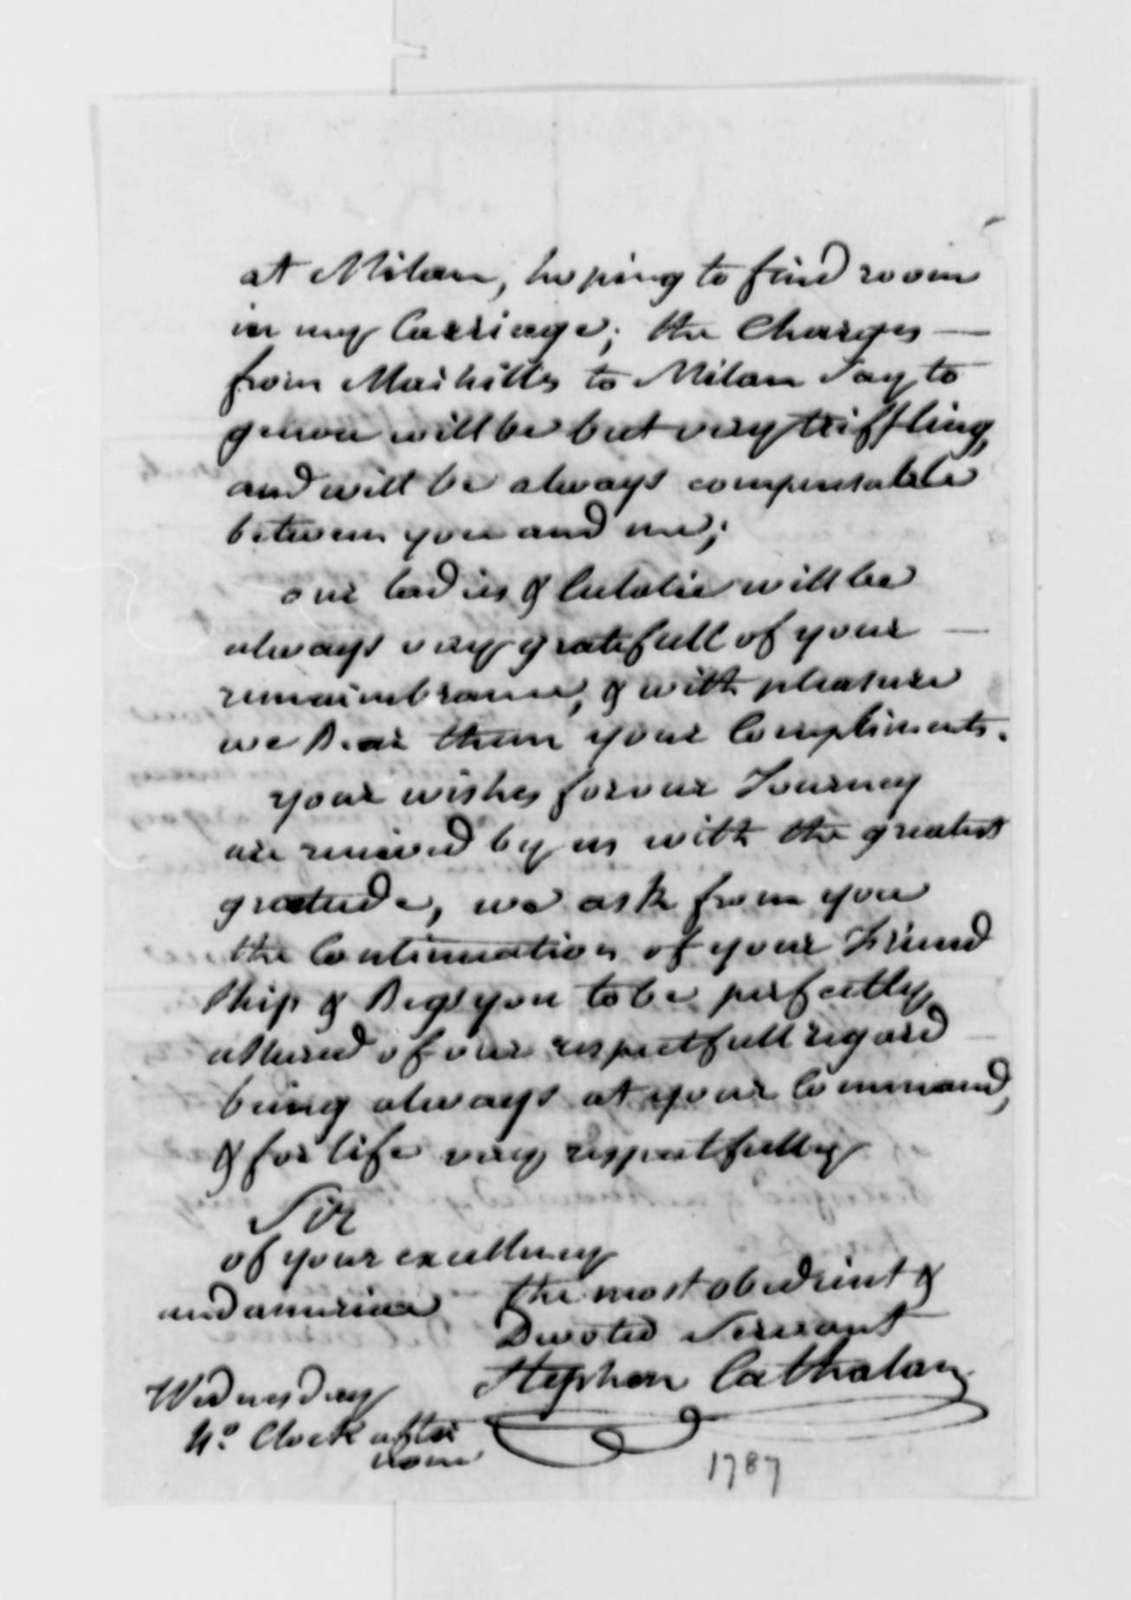 Stephen Cathalan Jr. to Thomas Jefferson, July 1787